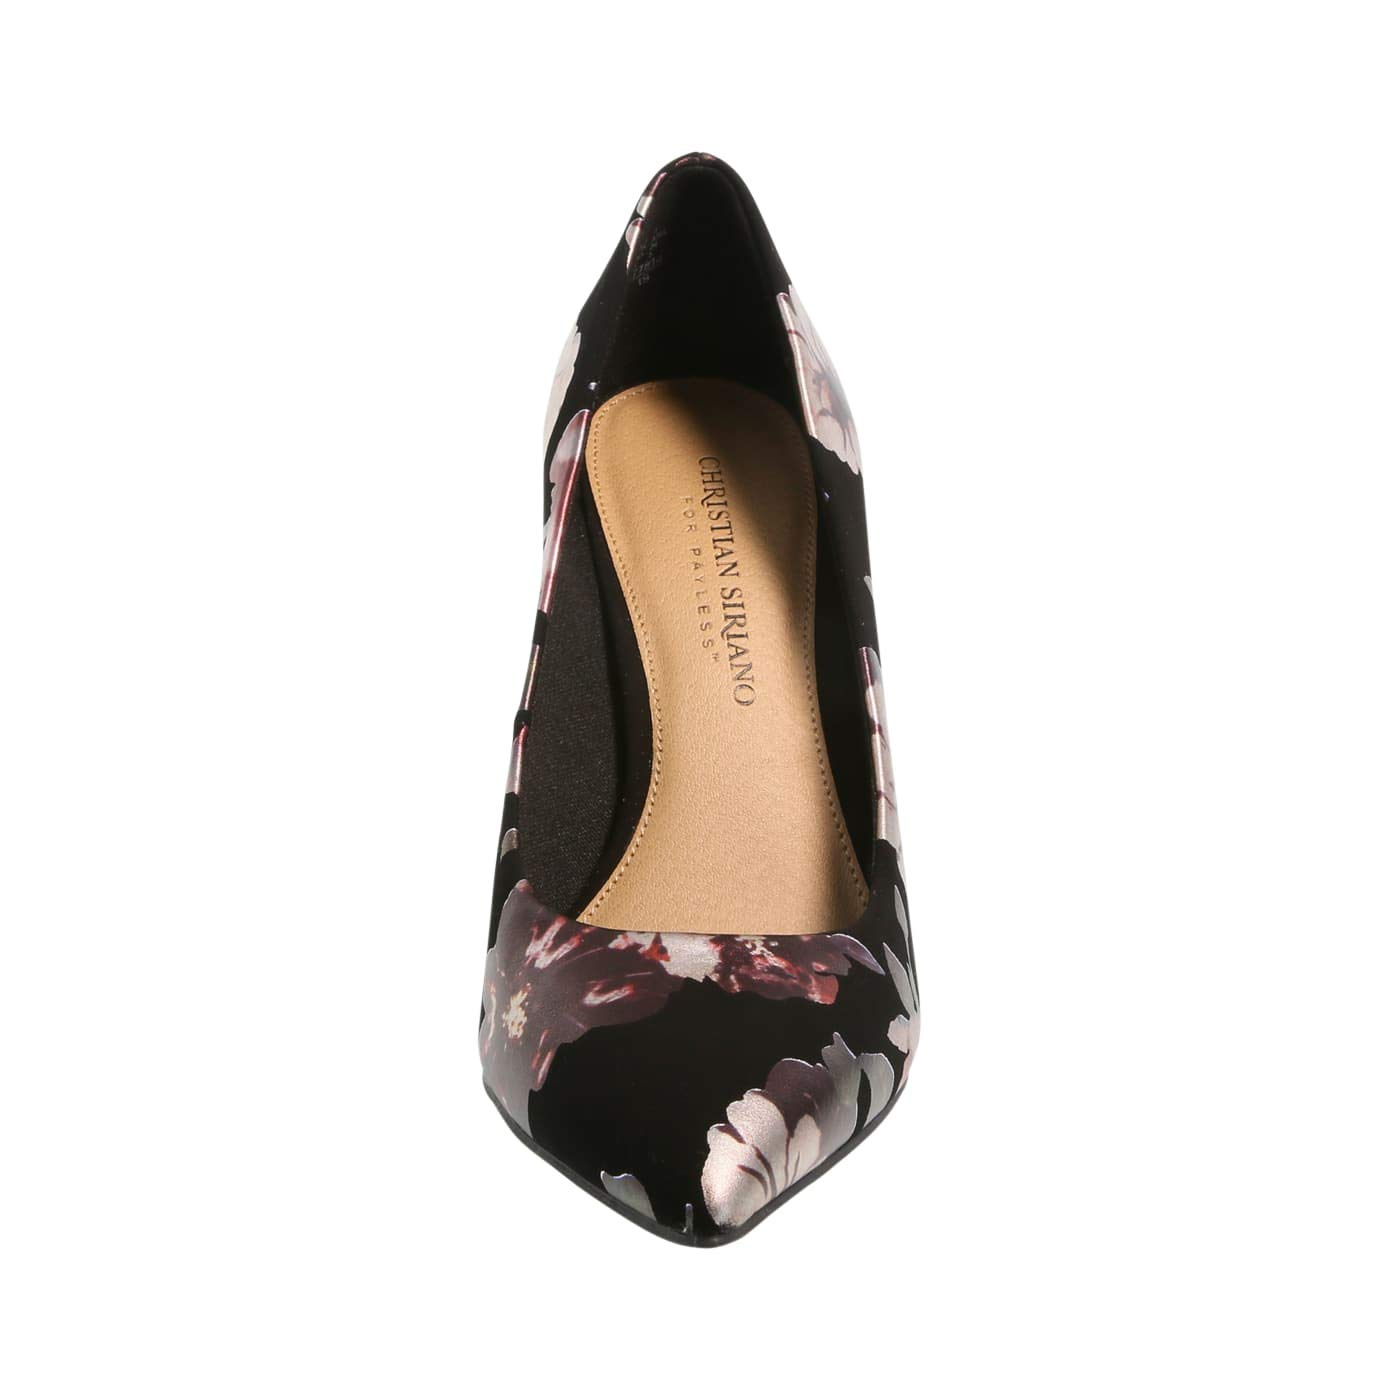 13c542148d Amazon.com | Christian Siriano for Payless Shimmer Black Floral Women's  Habit Pointed Pump 5 Wide | Pumps